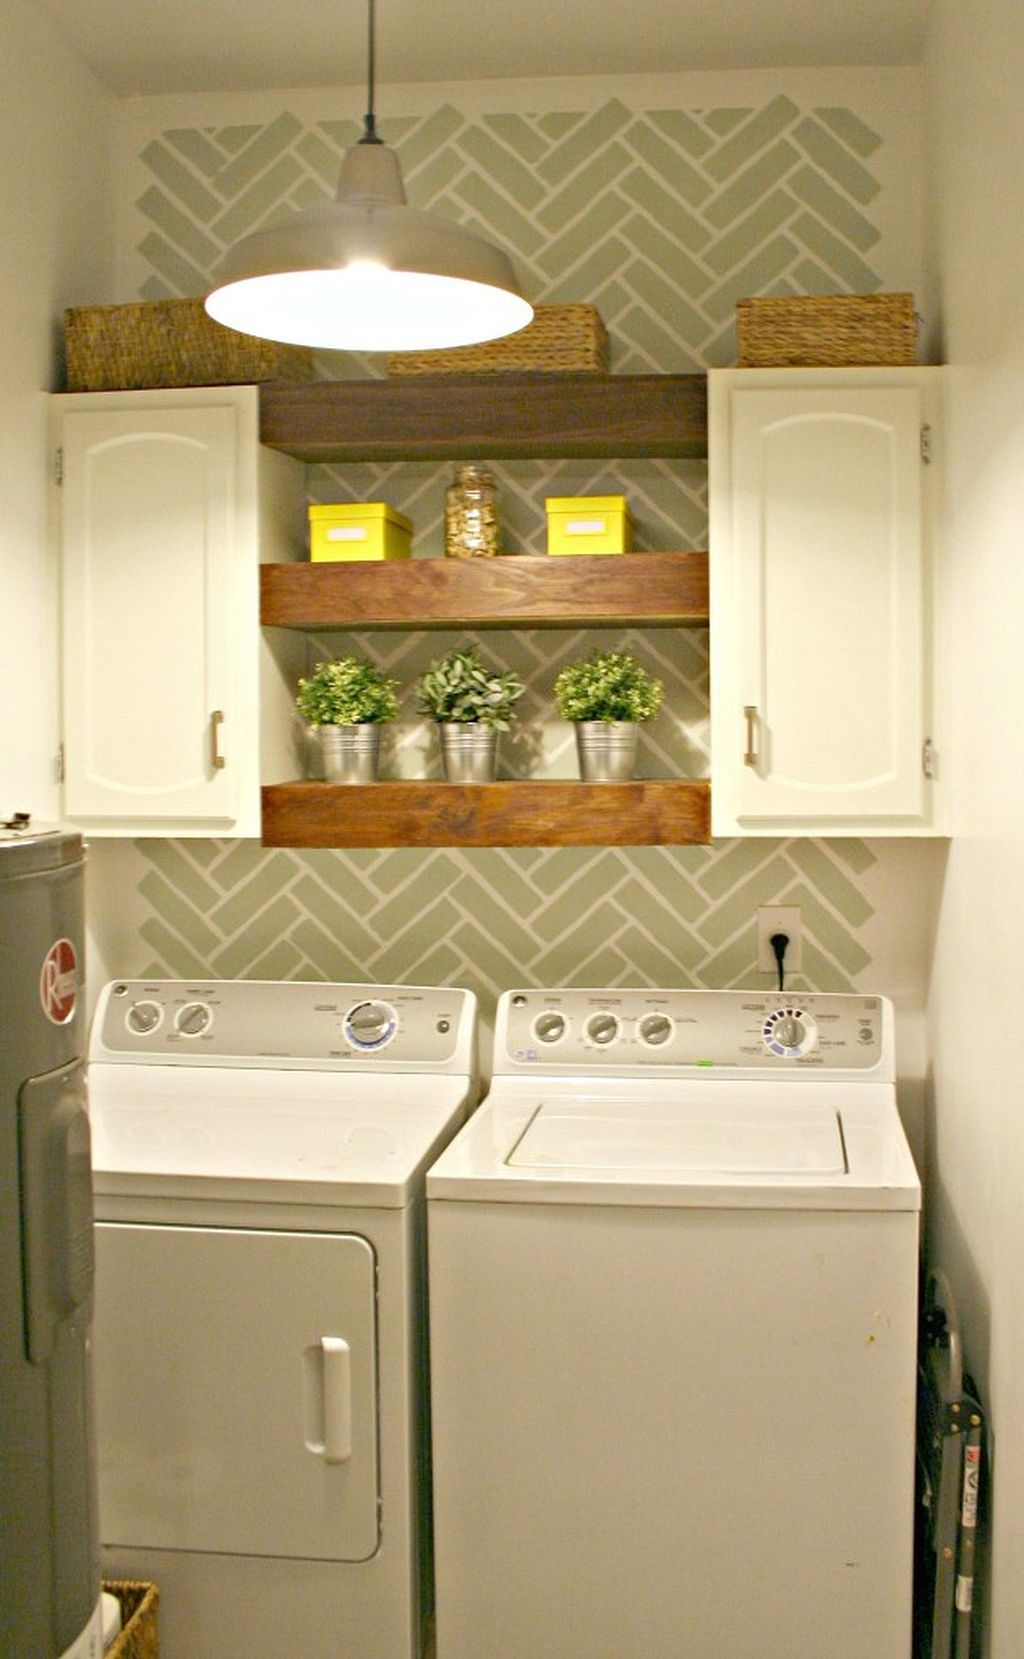 Cool Laundry Rooms Adorable 64 Tiny Space Laundry Room Storage Ideas  Laundry Room Decorating Inspiration